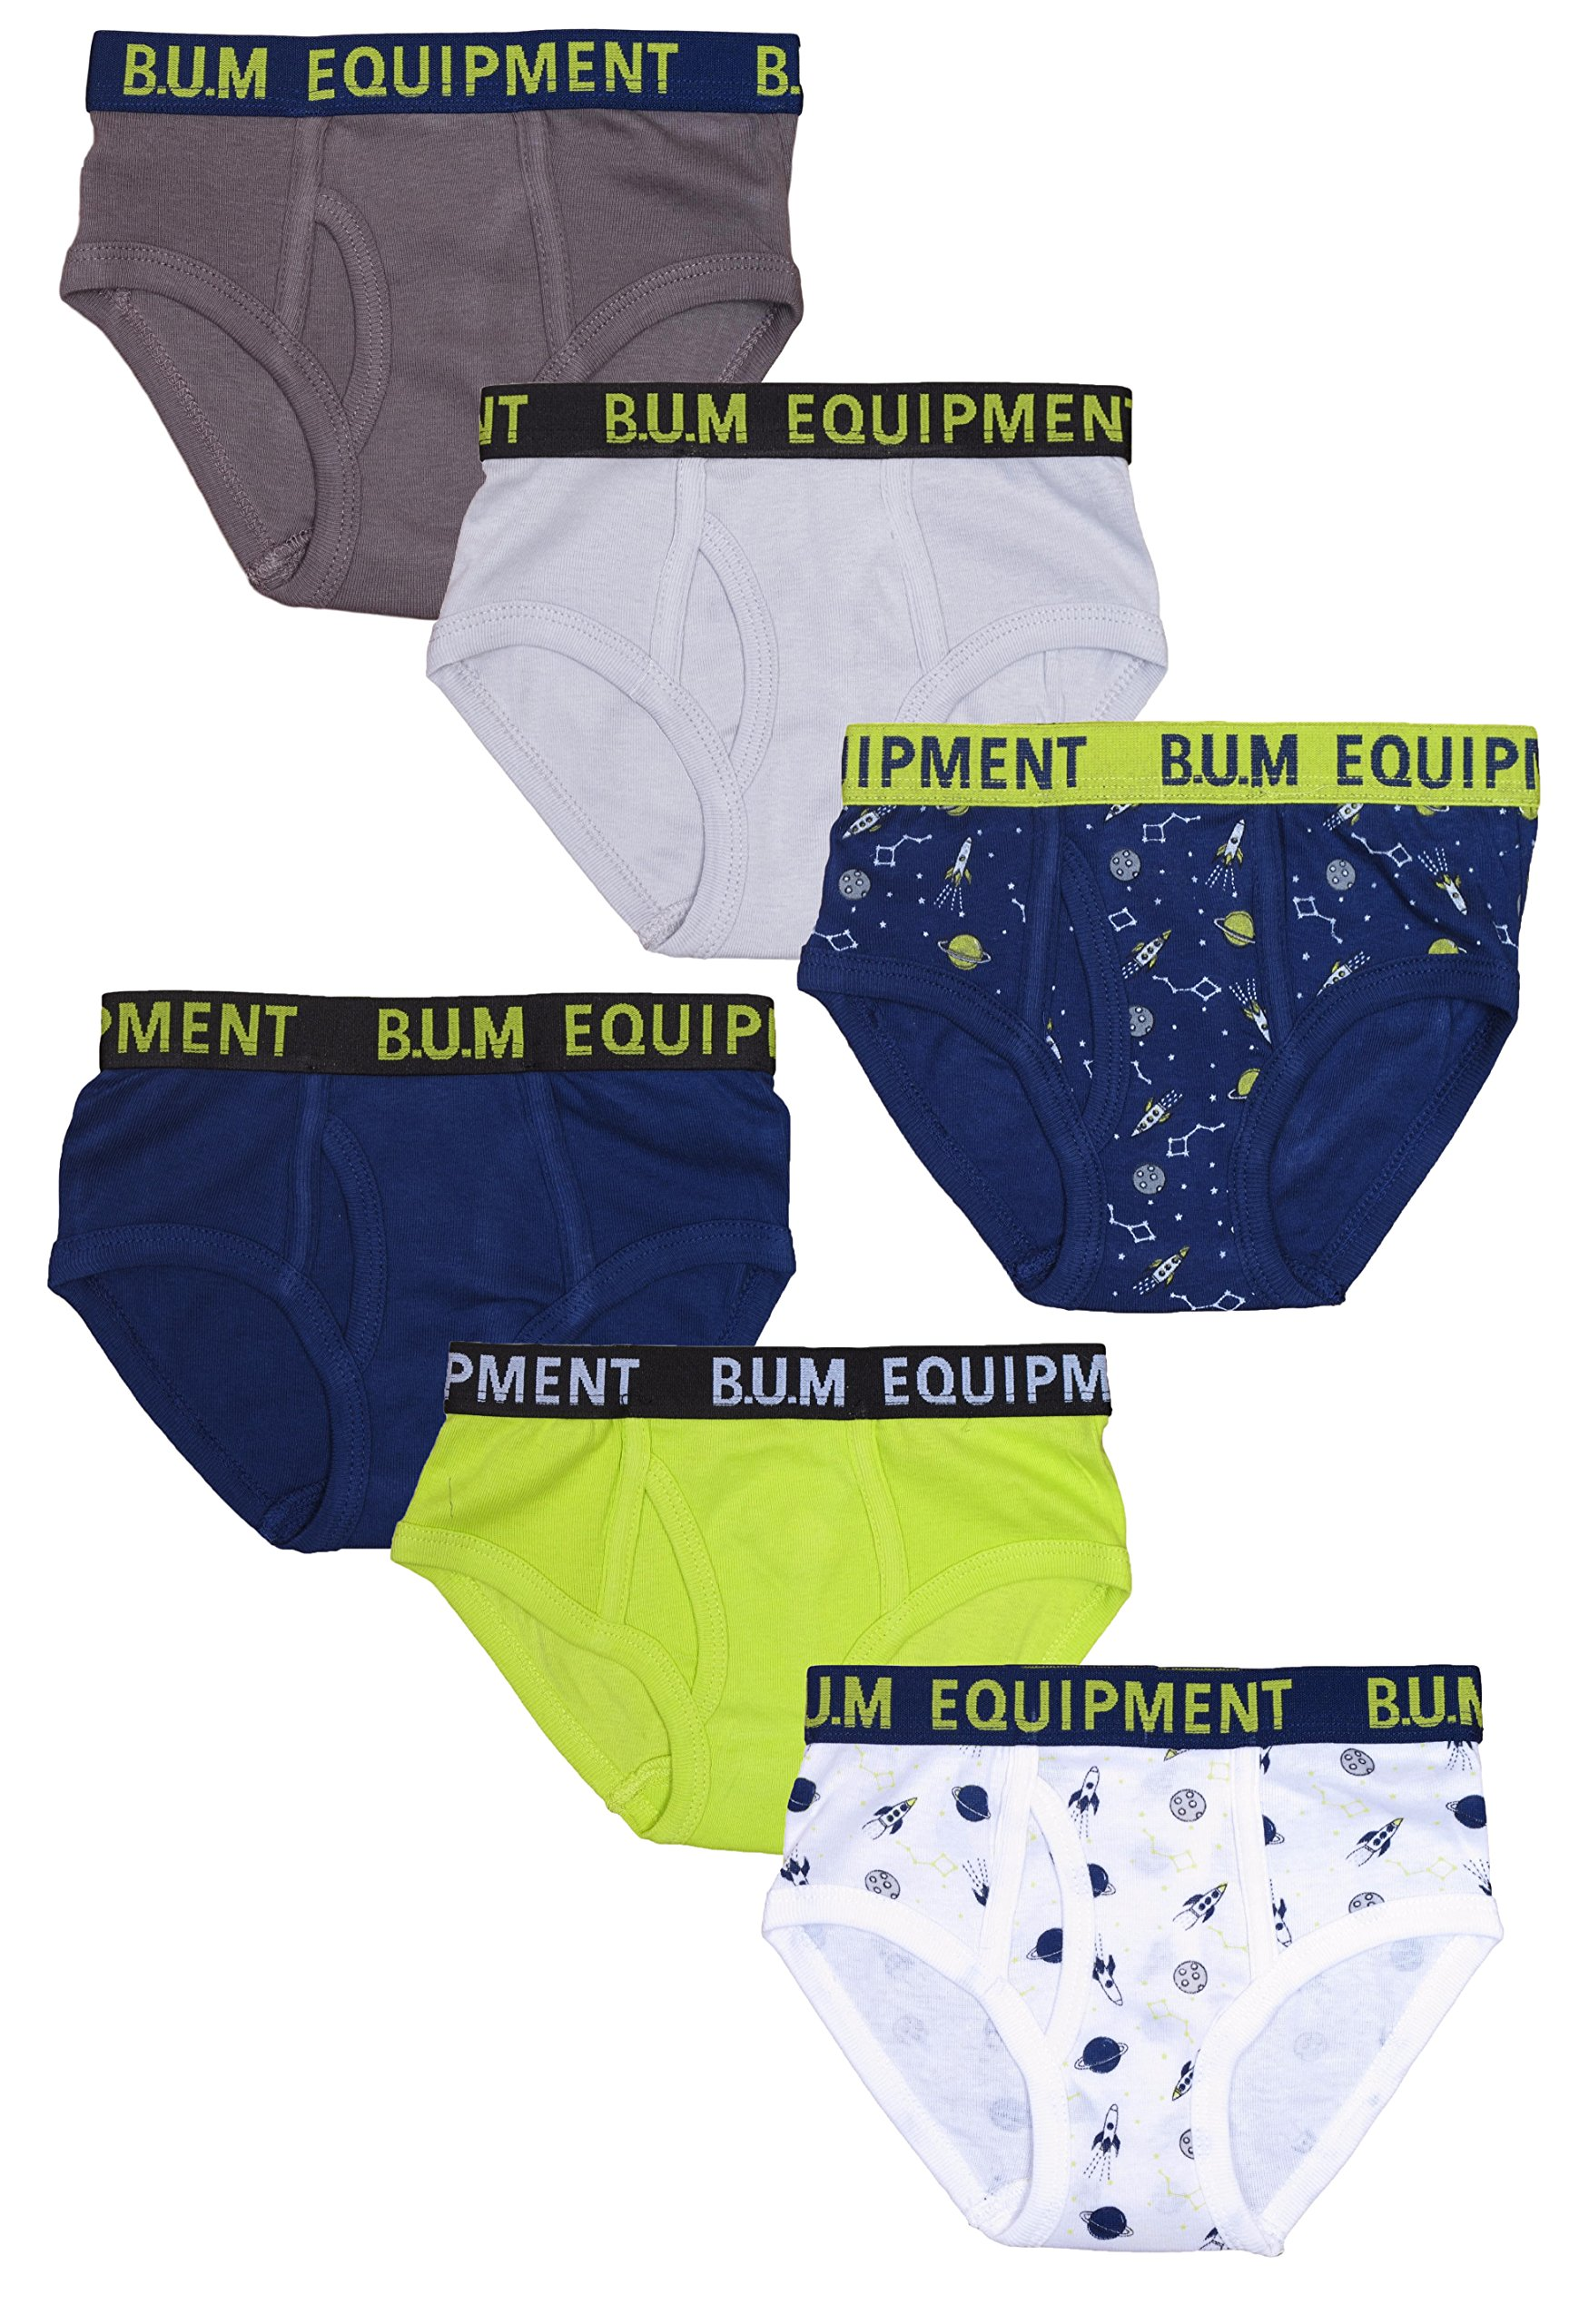 B.U.M. Equipment Boys 6 Pack Solid Underwear Briefs, Solids and Prints, Size 2/3